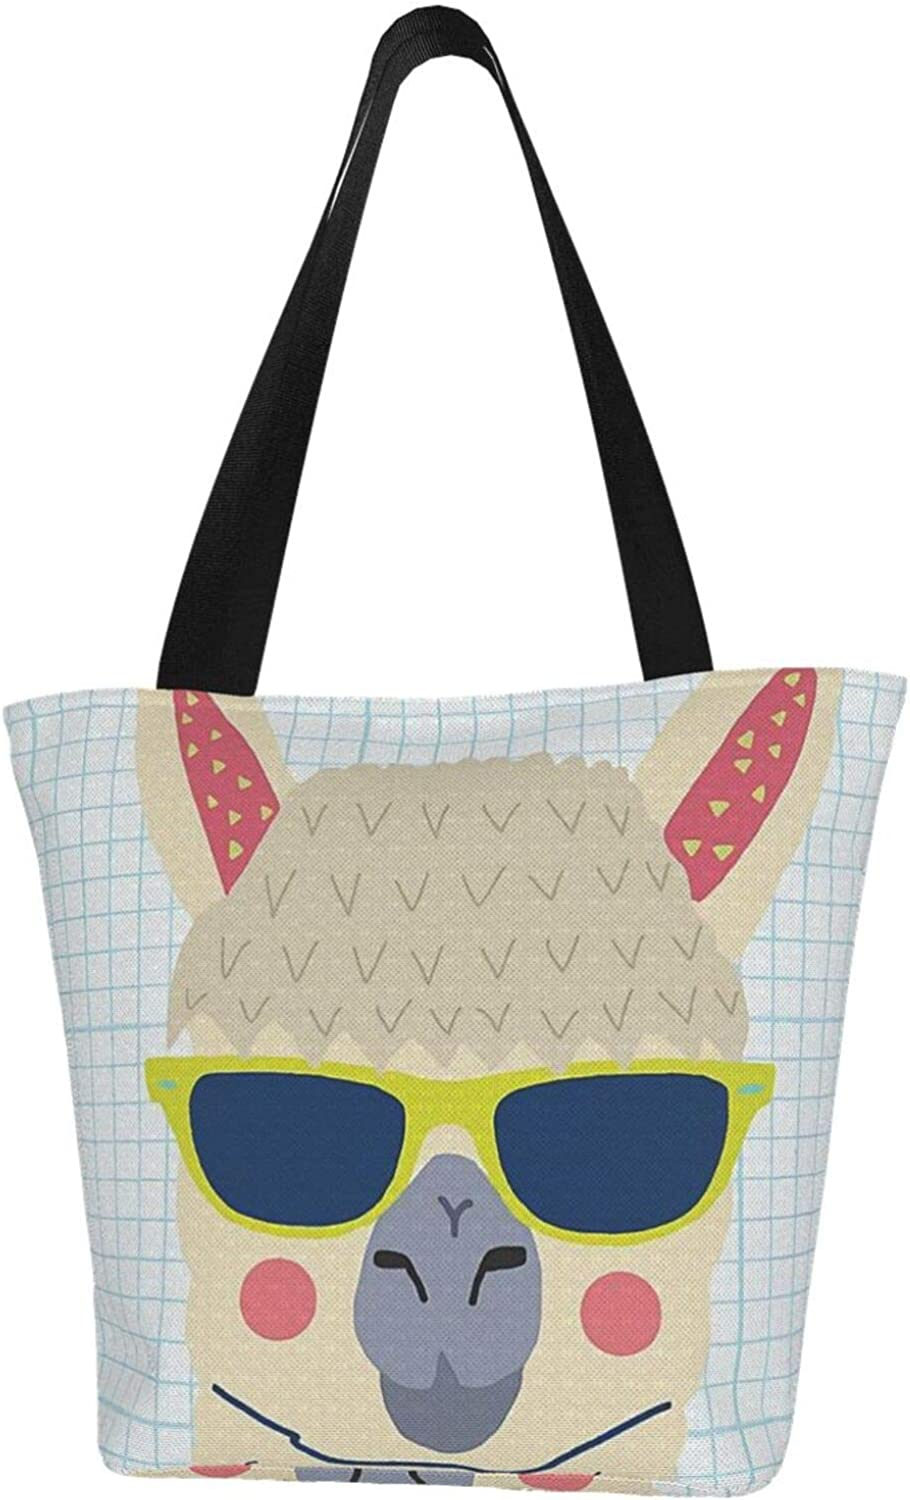 Llama Checked Glasses Are Cool Themed Printed Women Canvas Handbag Zipper Shoulder Bag Work Booksbag Tote Purse Leisure Hobo Bag For Shopping